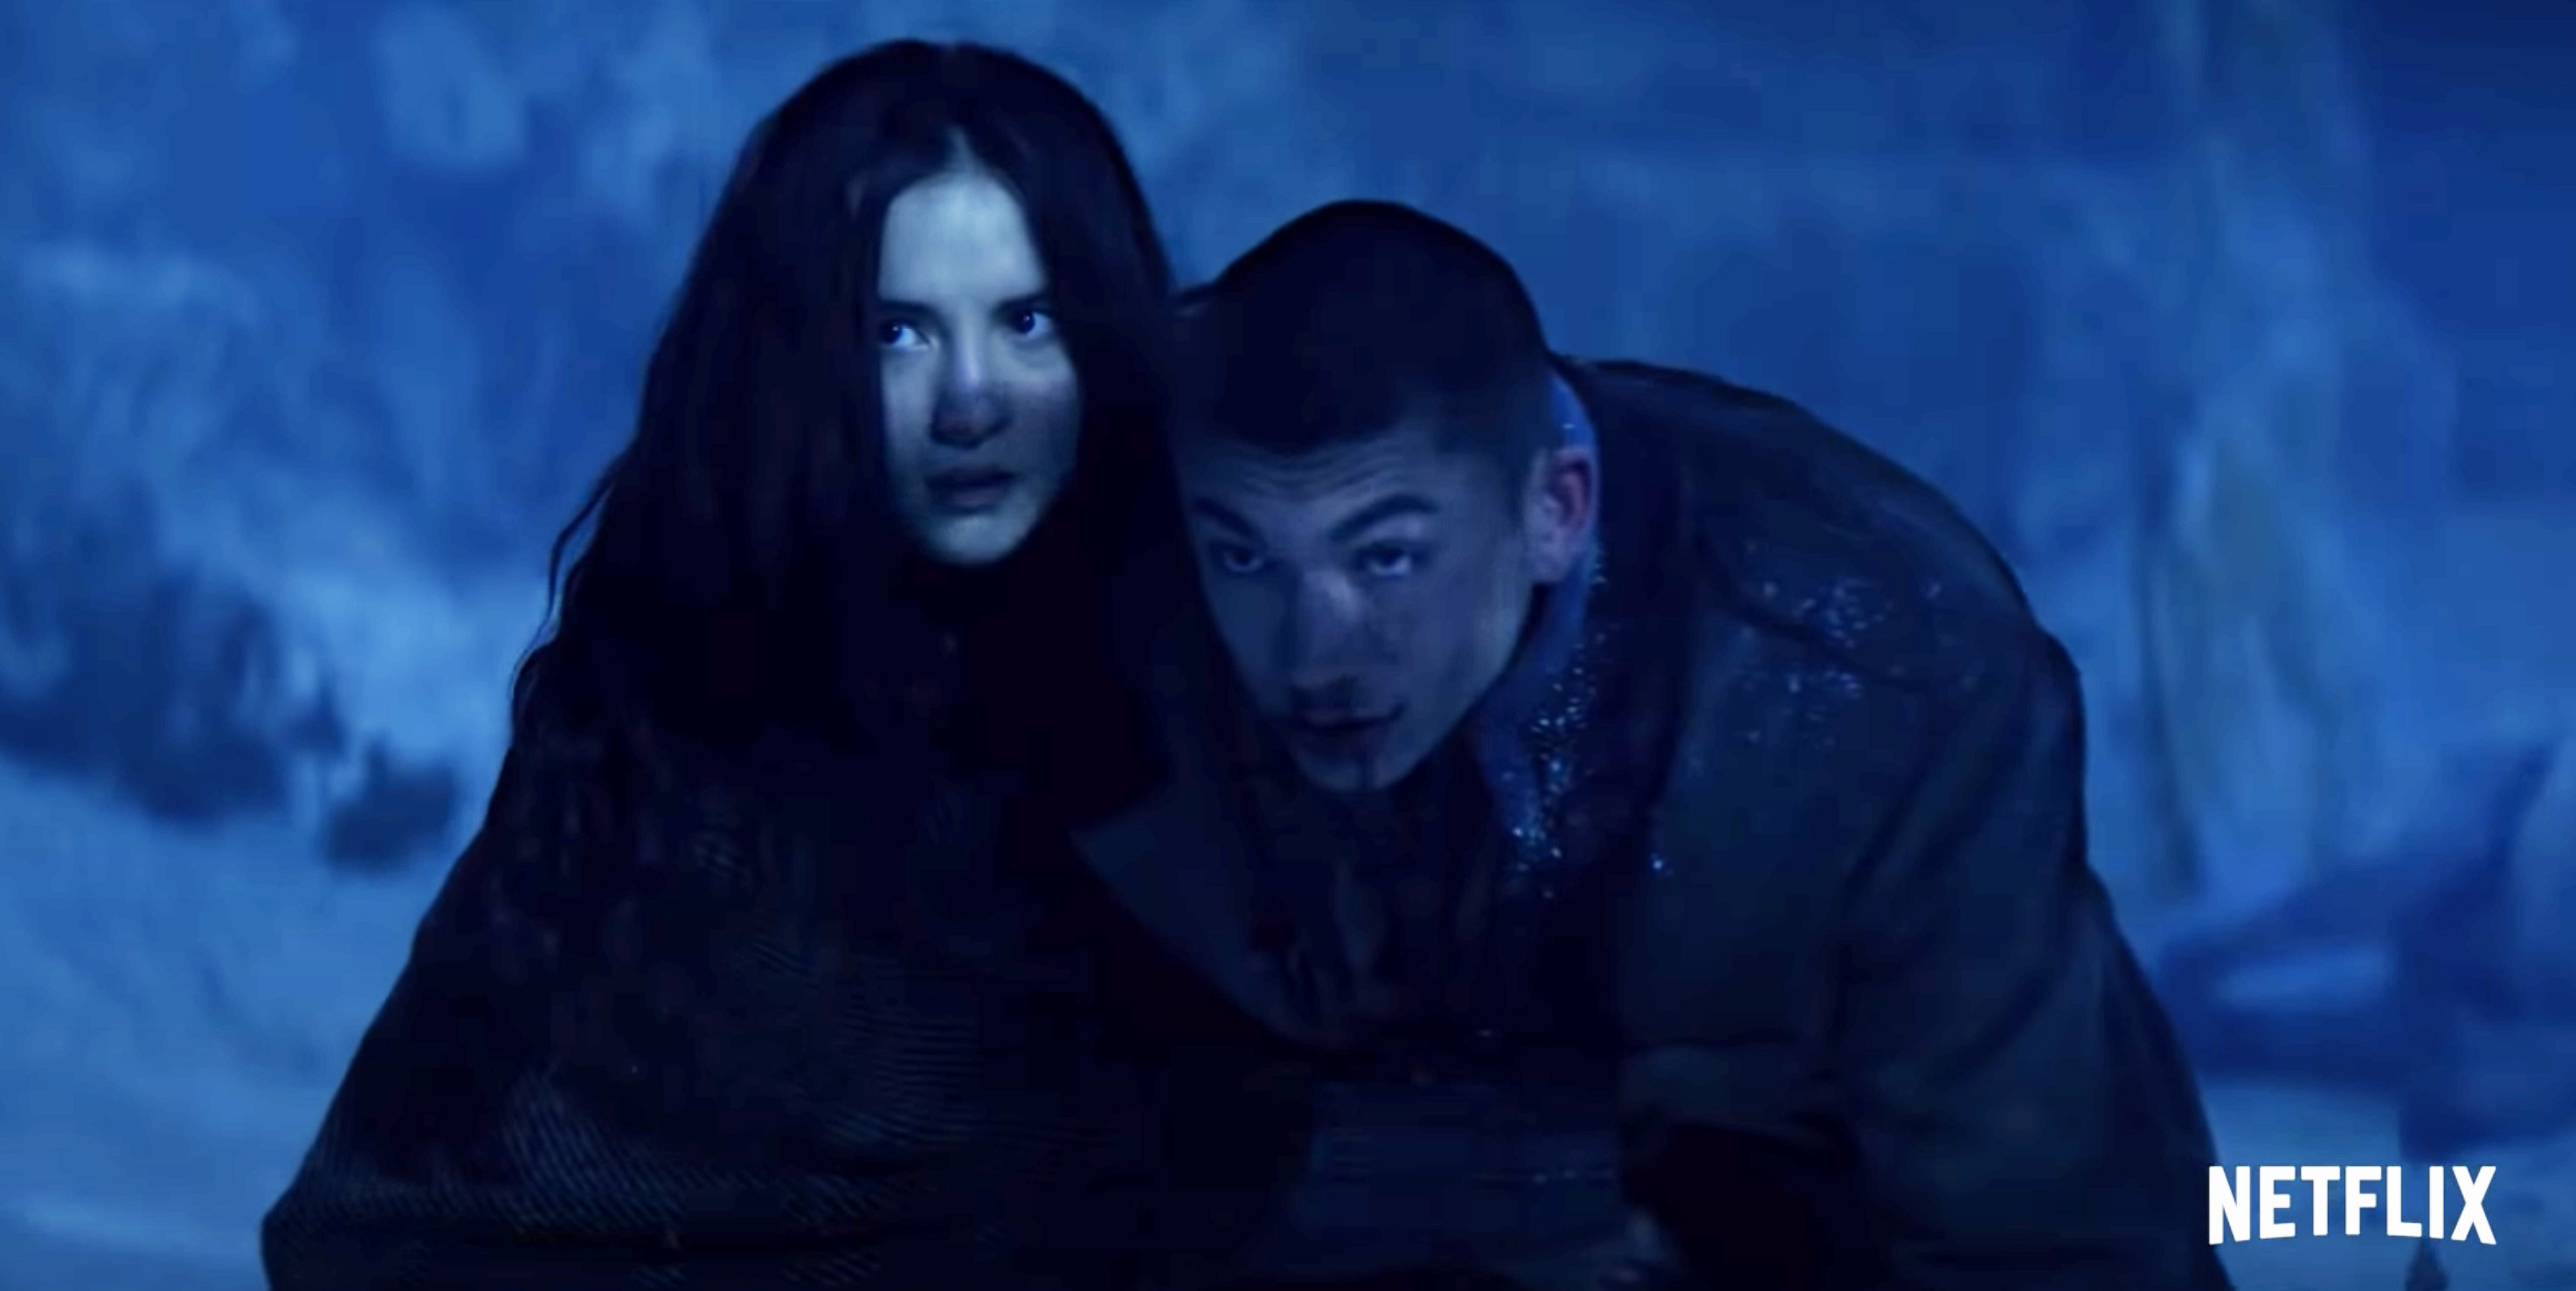 Jesse Mei Li and Archie Renaux as Alina Starkov and Mal Oretsev in Shadow and Bone